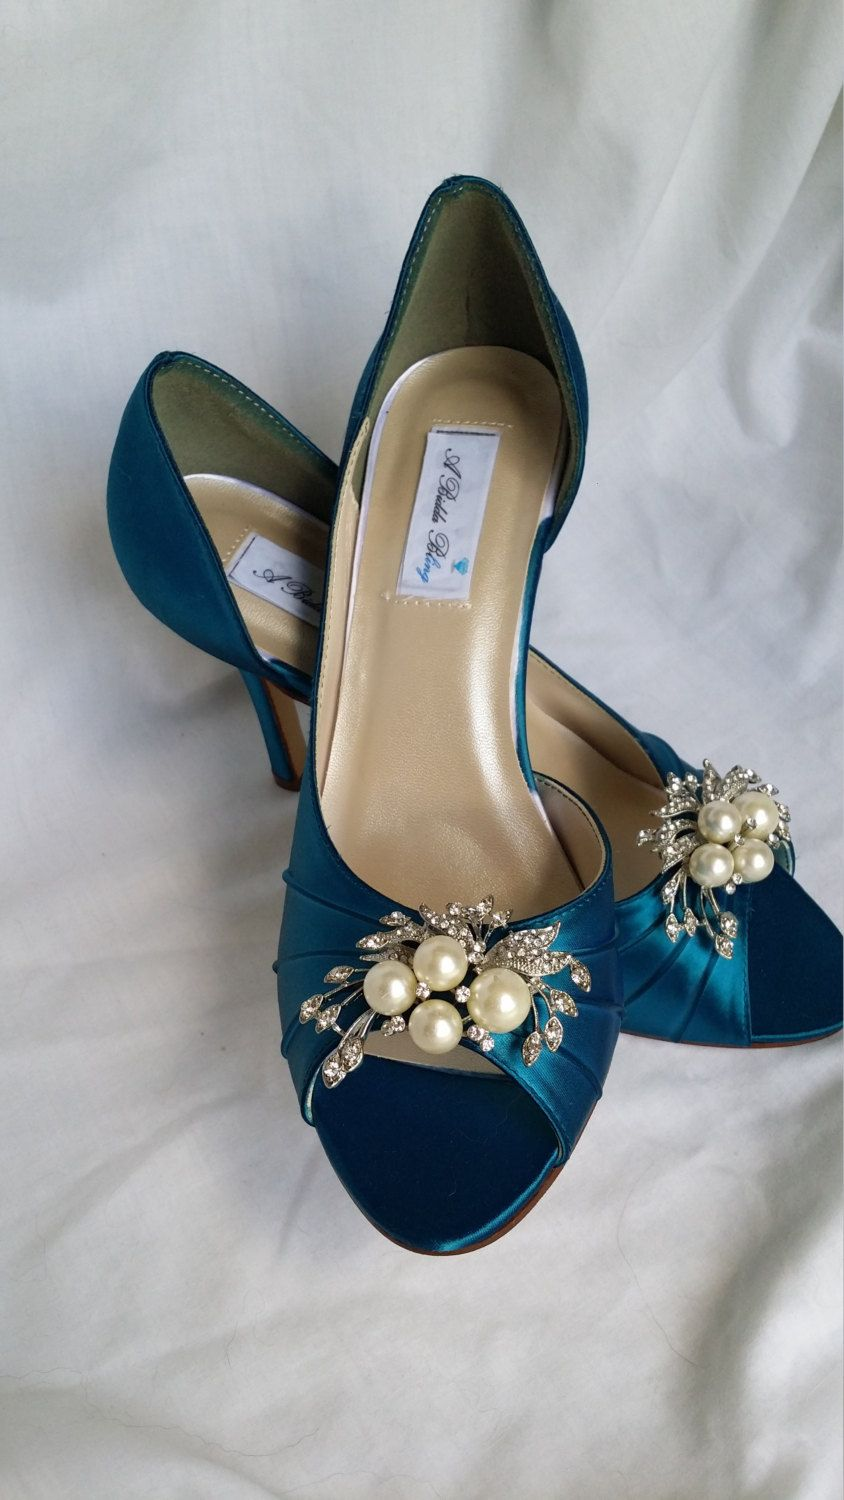 Wedding Shoes Teal Bridal Shoes With Pearl And Crystal Cascading Brooch Design 100 Additional Colors To Teal Wedding Shoes Wedding Shoes Dyeable Wedding Shoes